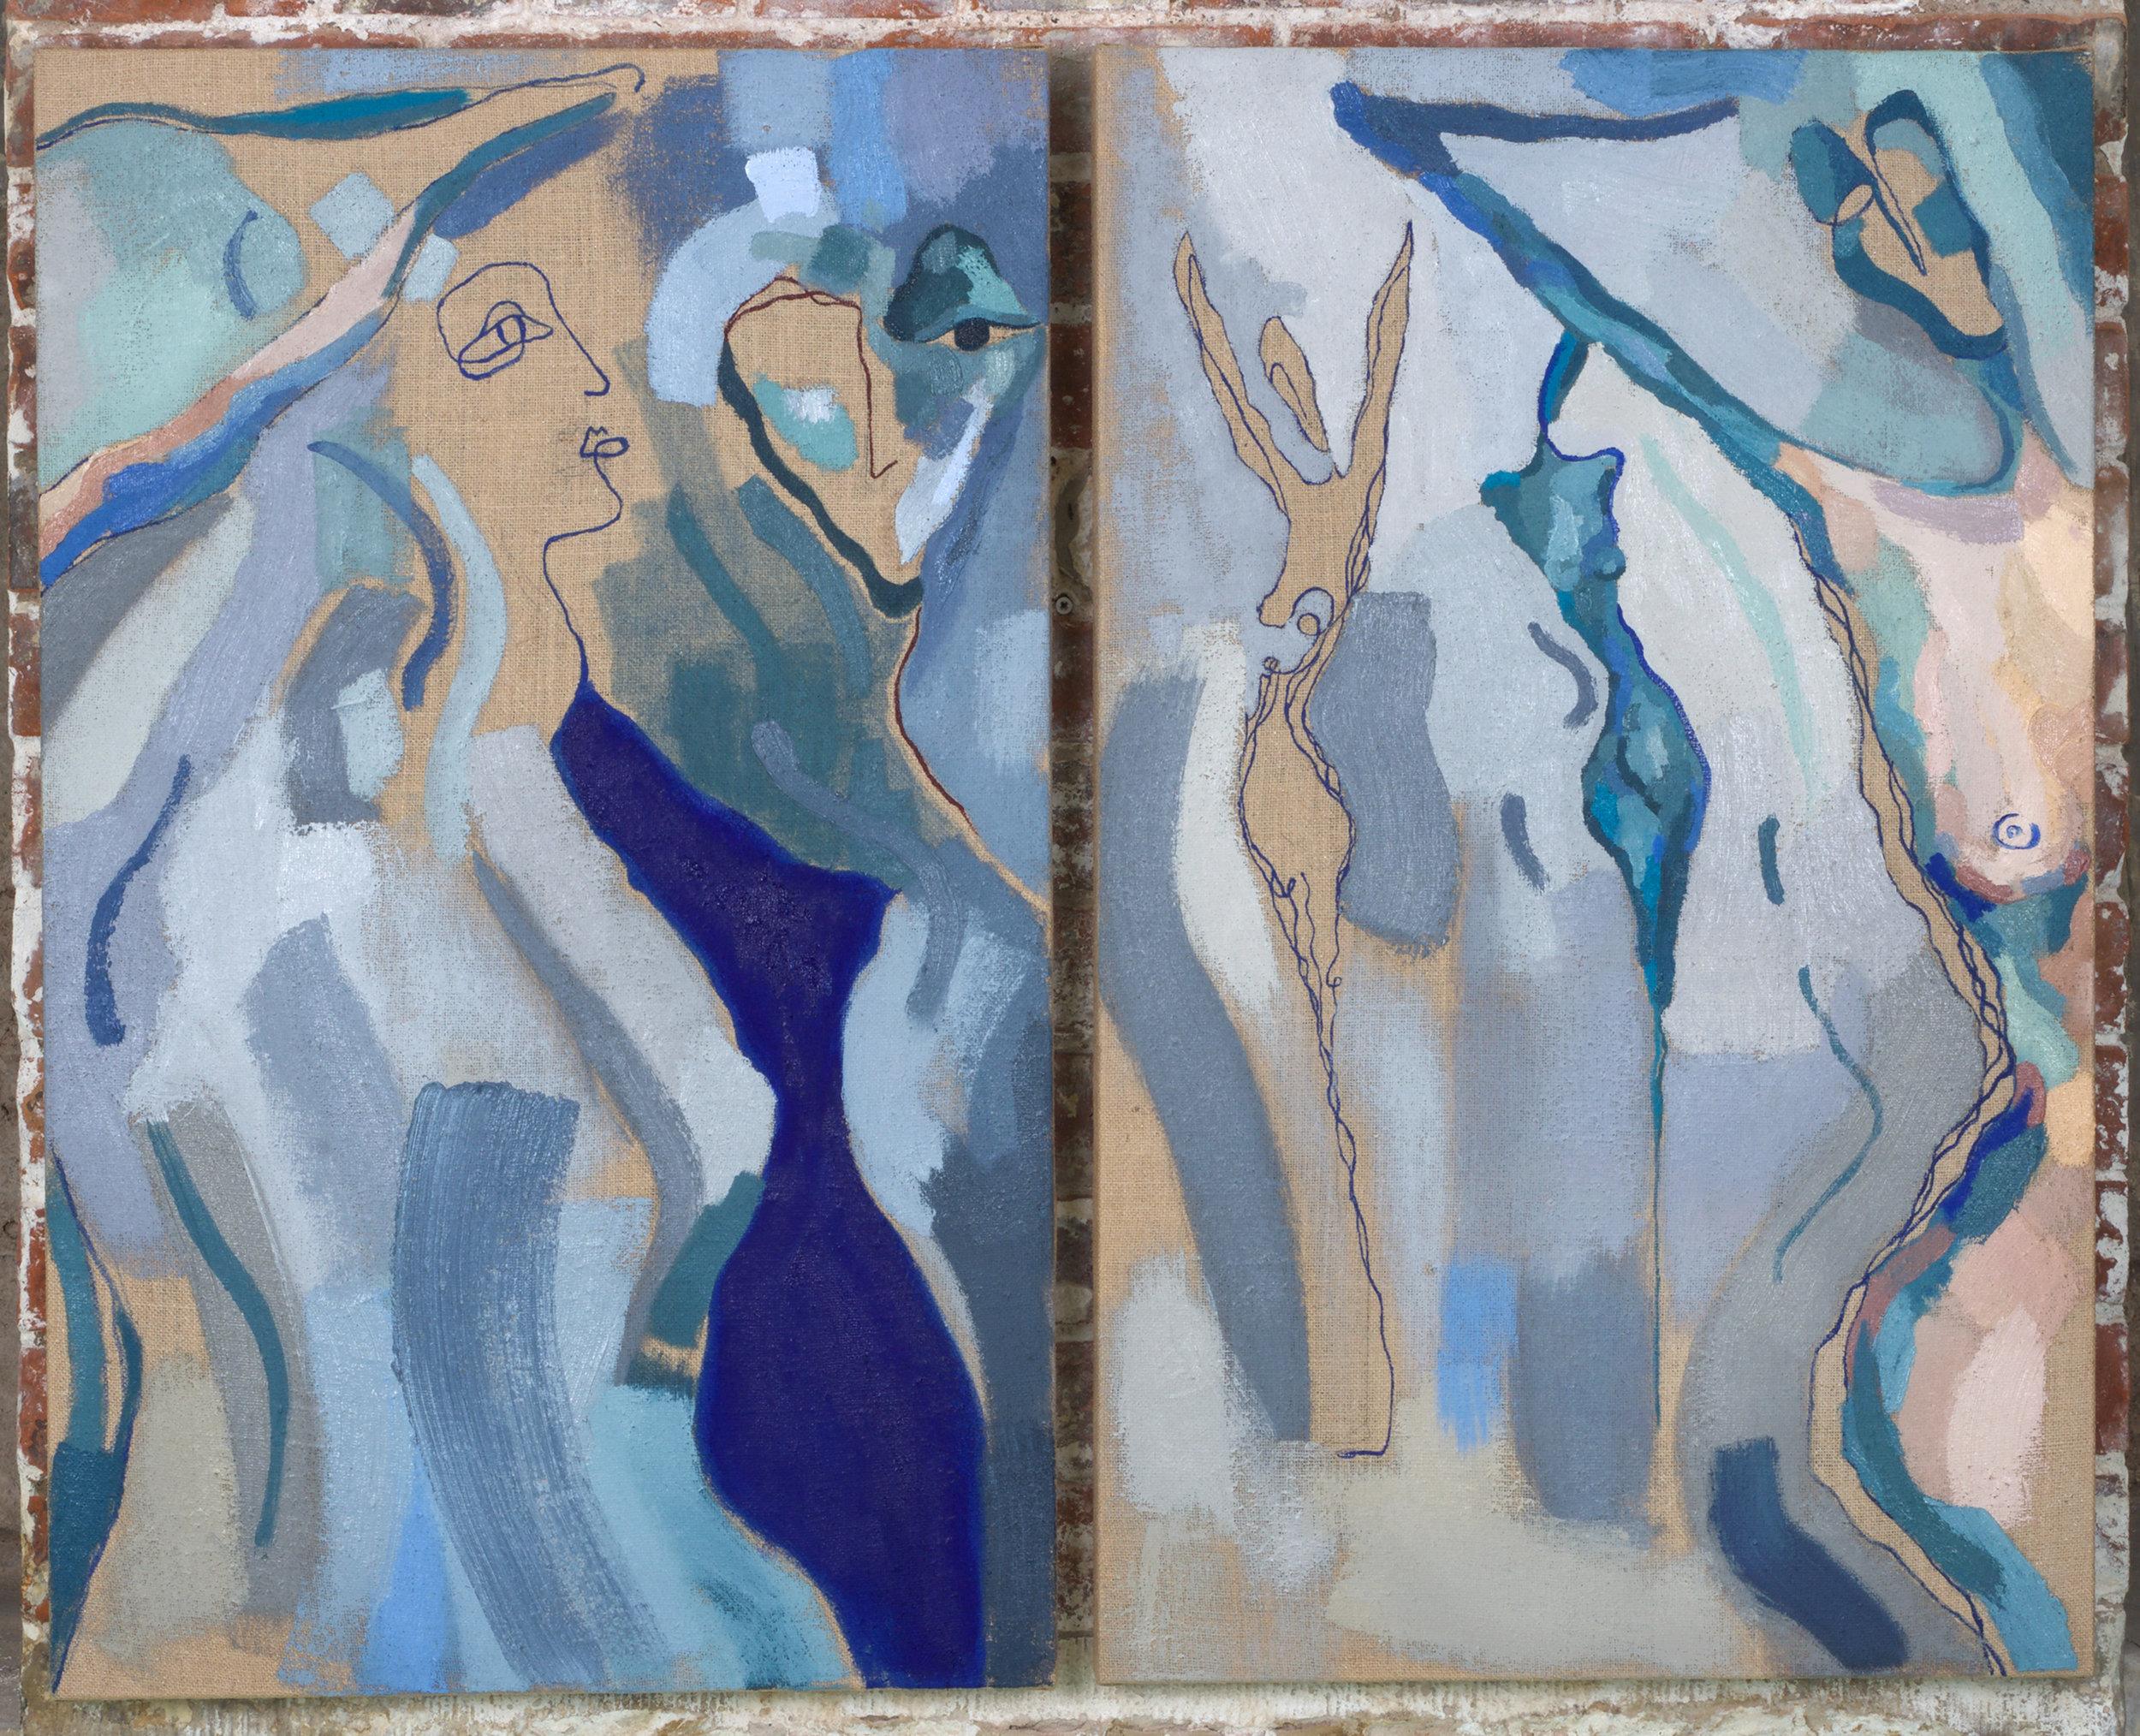 Diptych (Oil on jute) by Venetia Berry.   venetiaberry.com